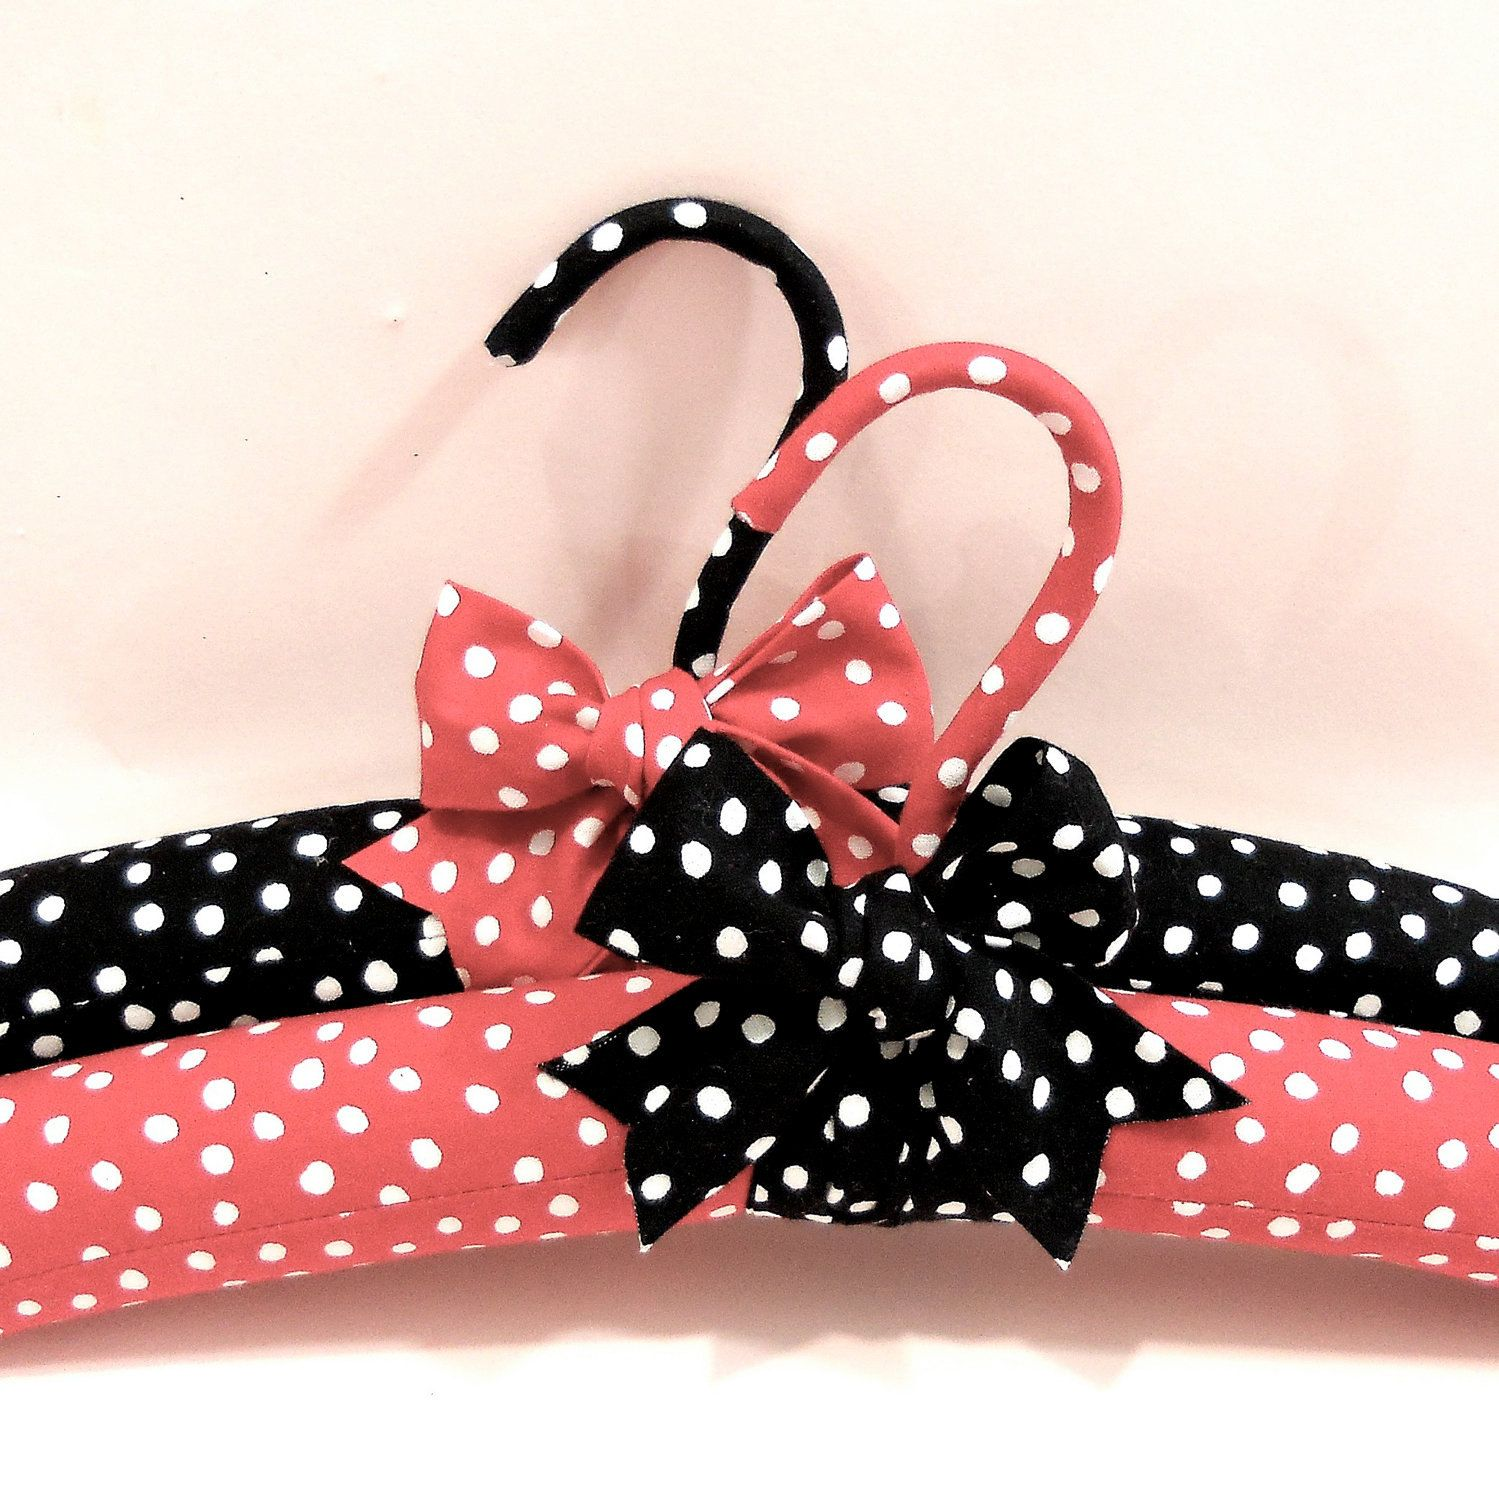 how to make padded hangers